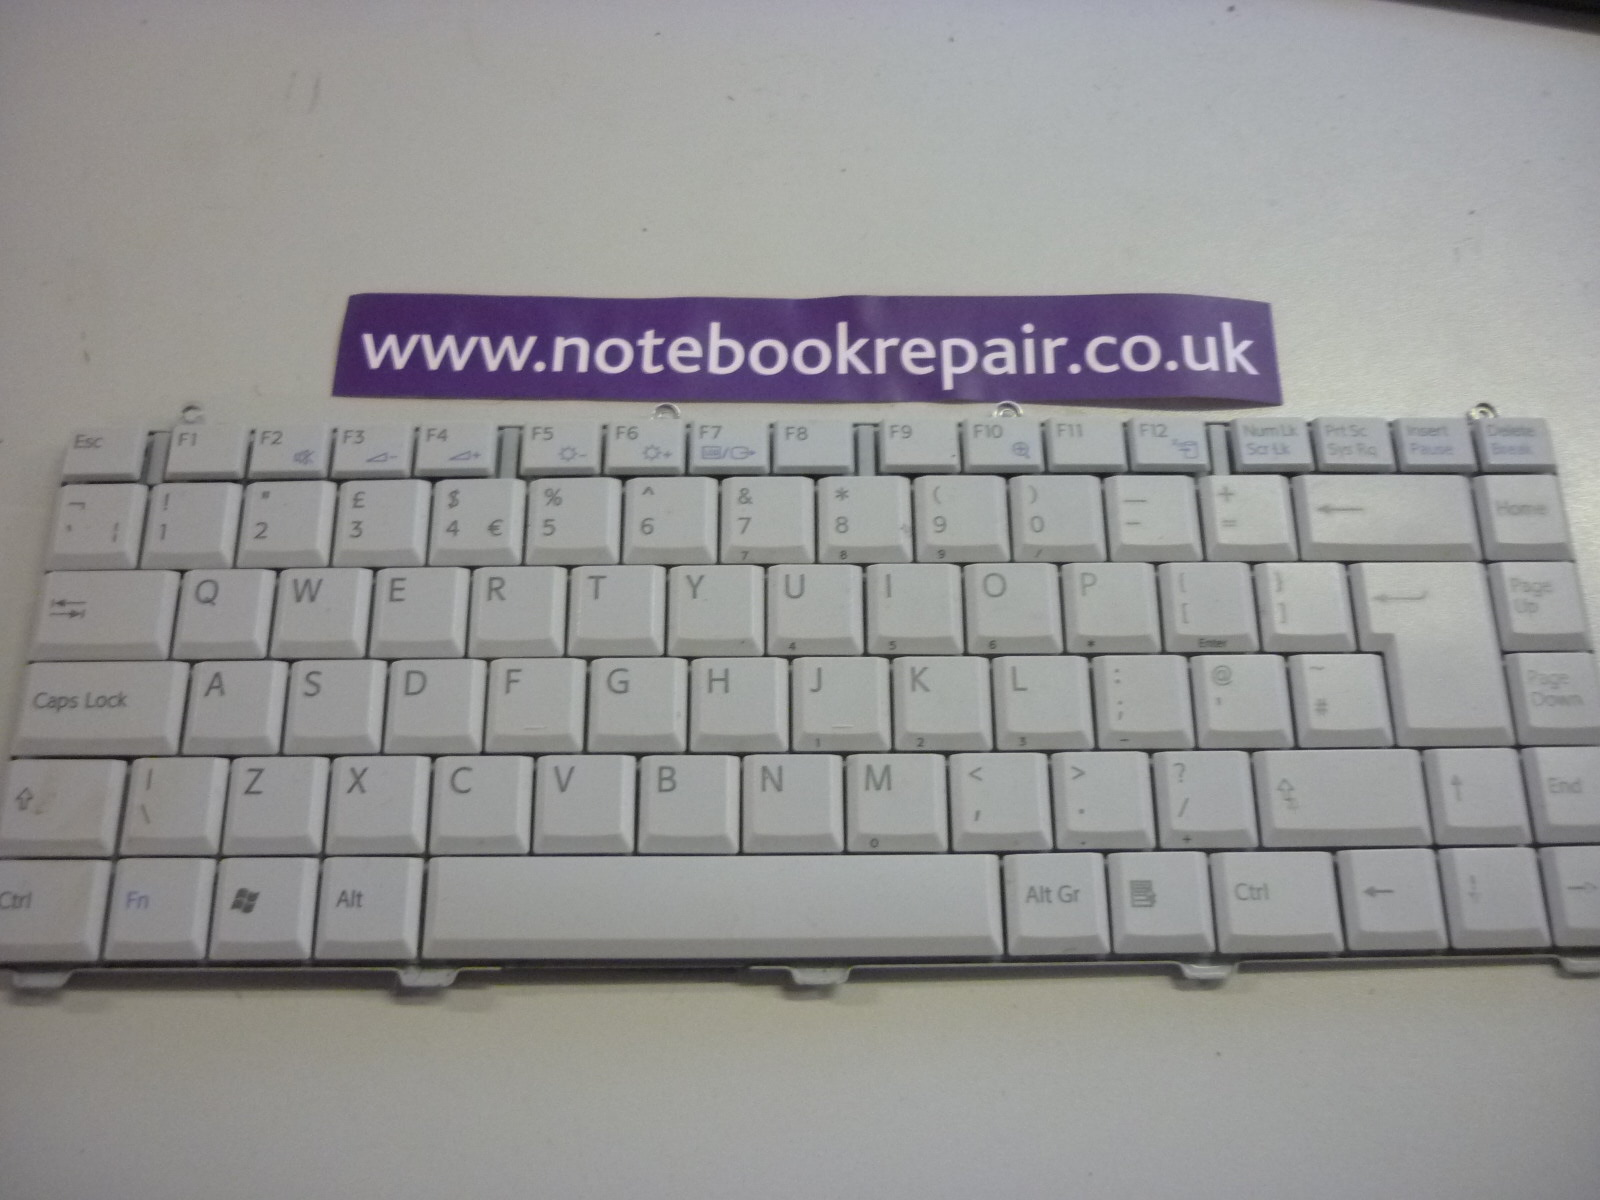 VGN-FS115S KEYBOARD UK A-479-154-11